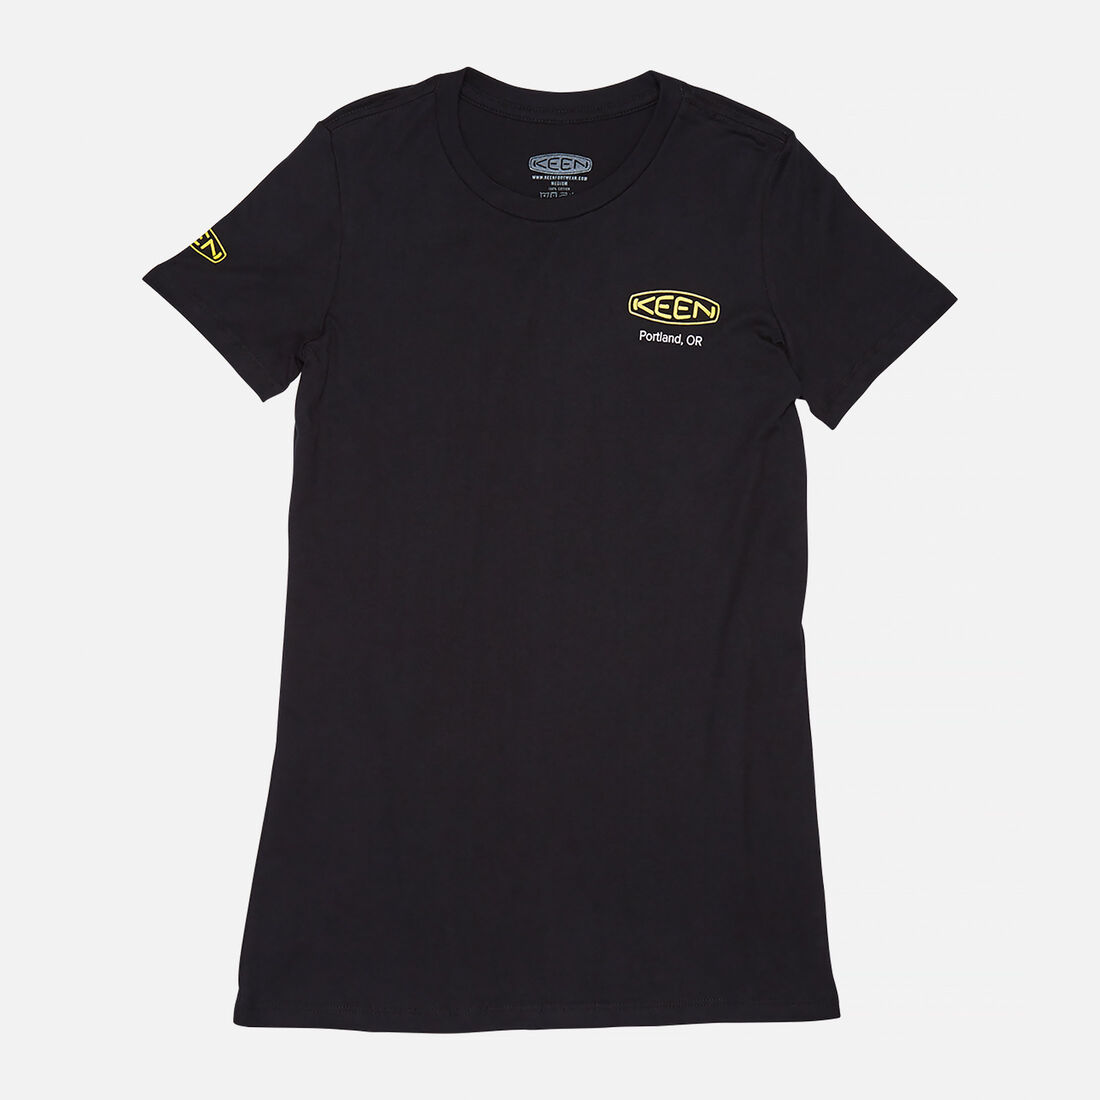 Women's KEEN PDX T-SHIRT in Black - large view.